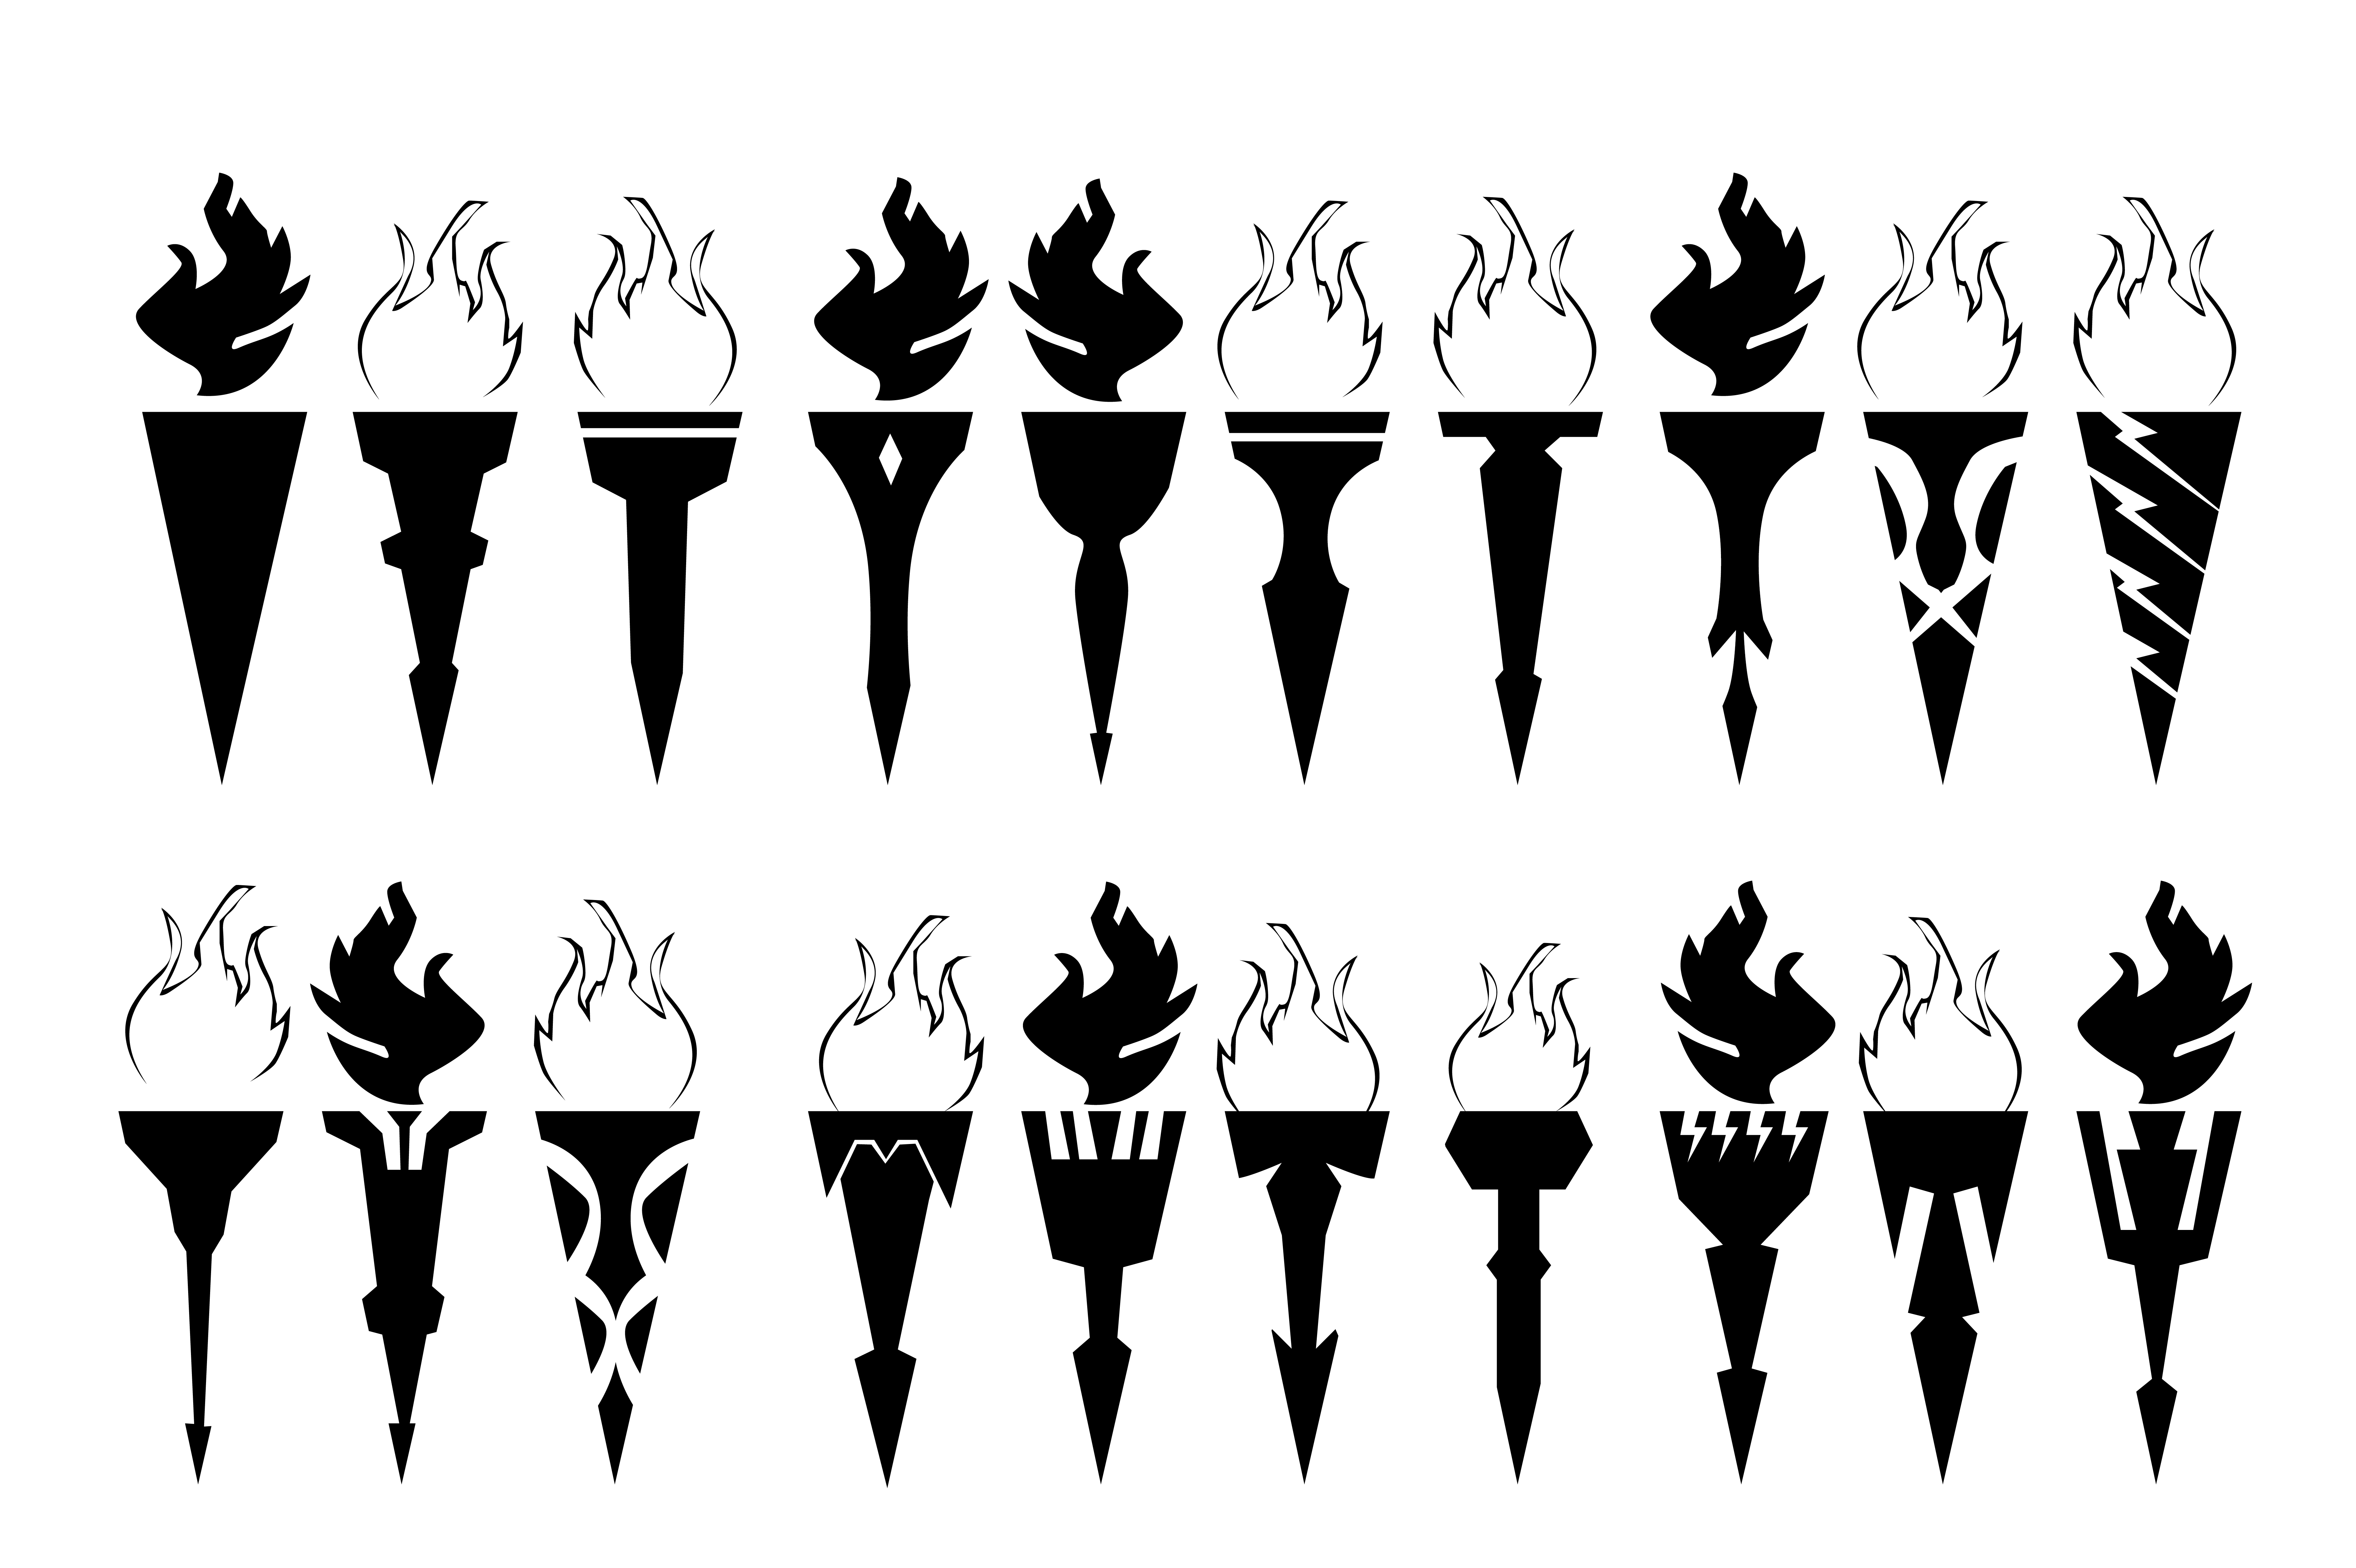 Download Free Torch Icon Collection Graphic By Rfg Creative Fabrica for Cricut Explore, Silhouette and other cutting machines.